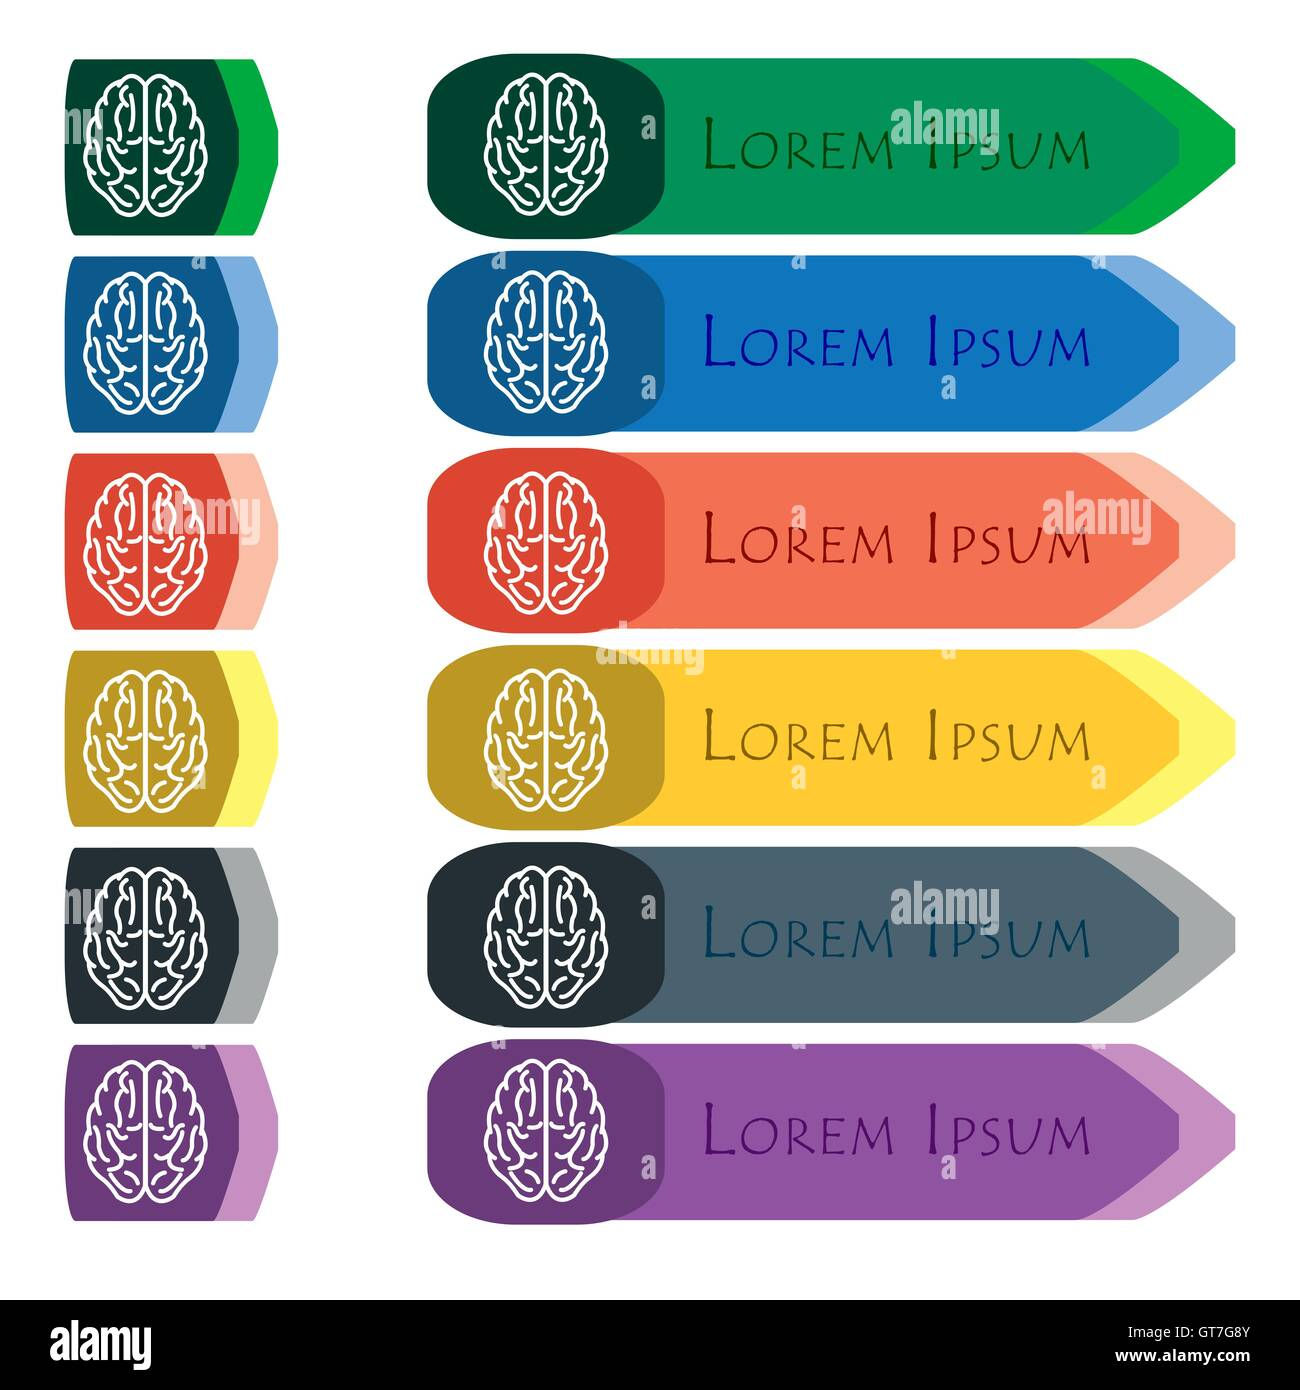 Human Brain Artwork Cut Out Stock Images & Pictures - Alamy